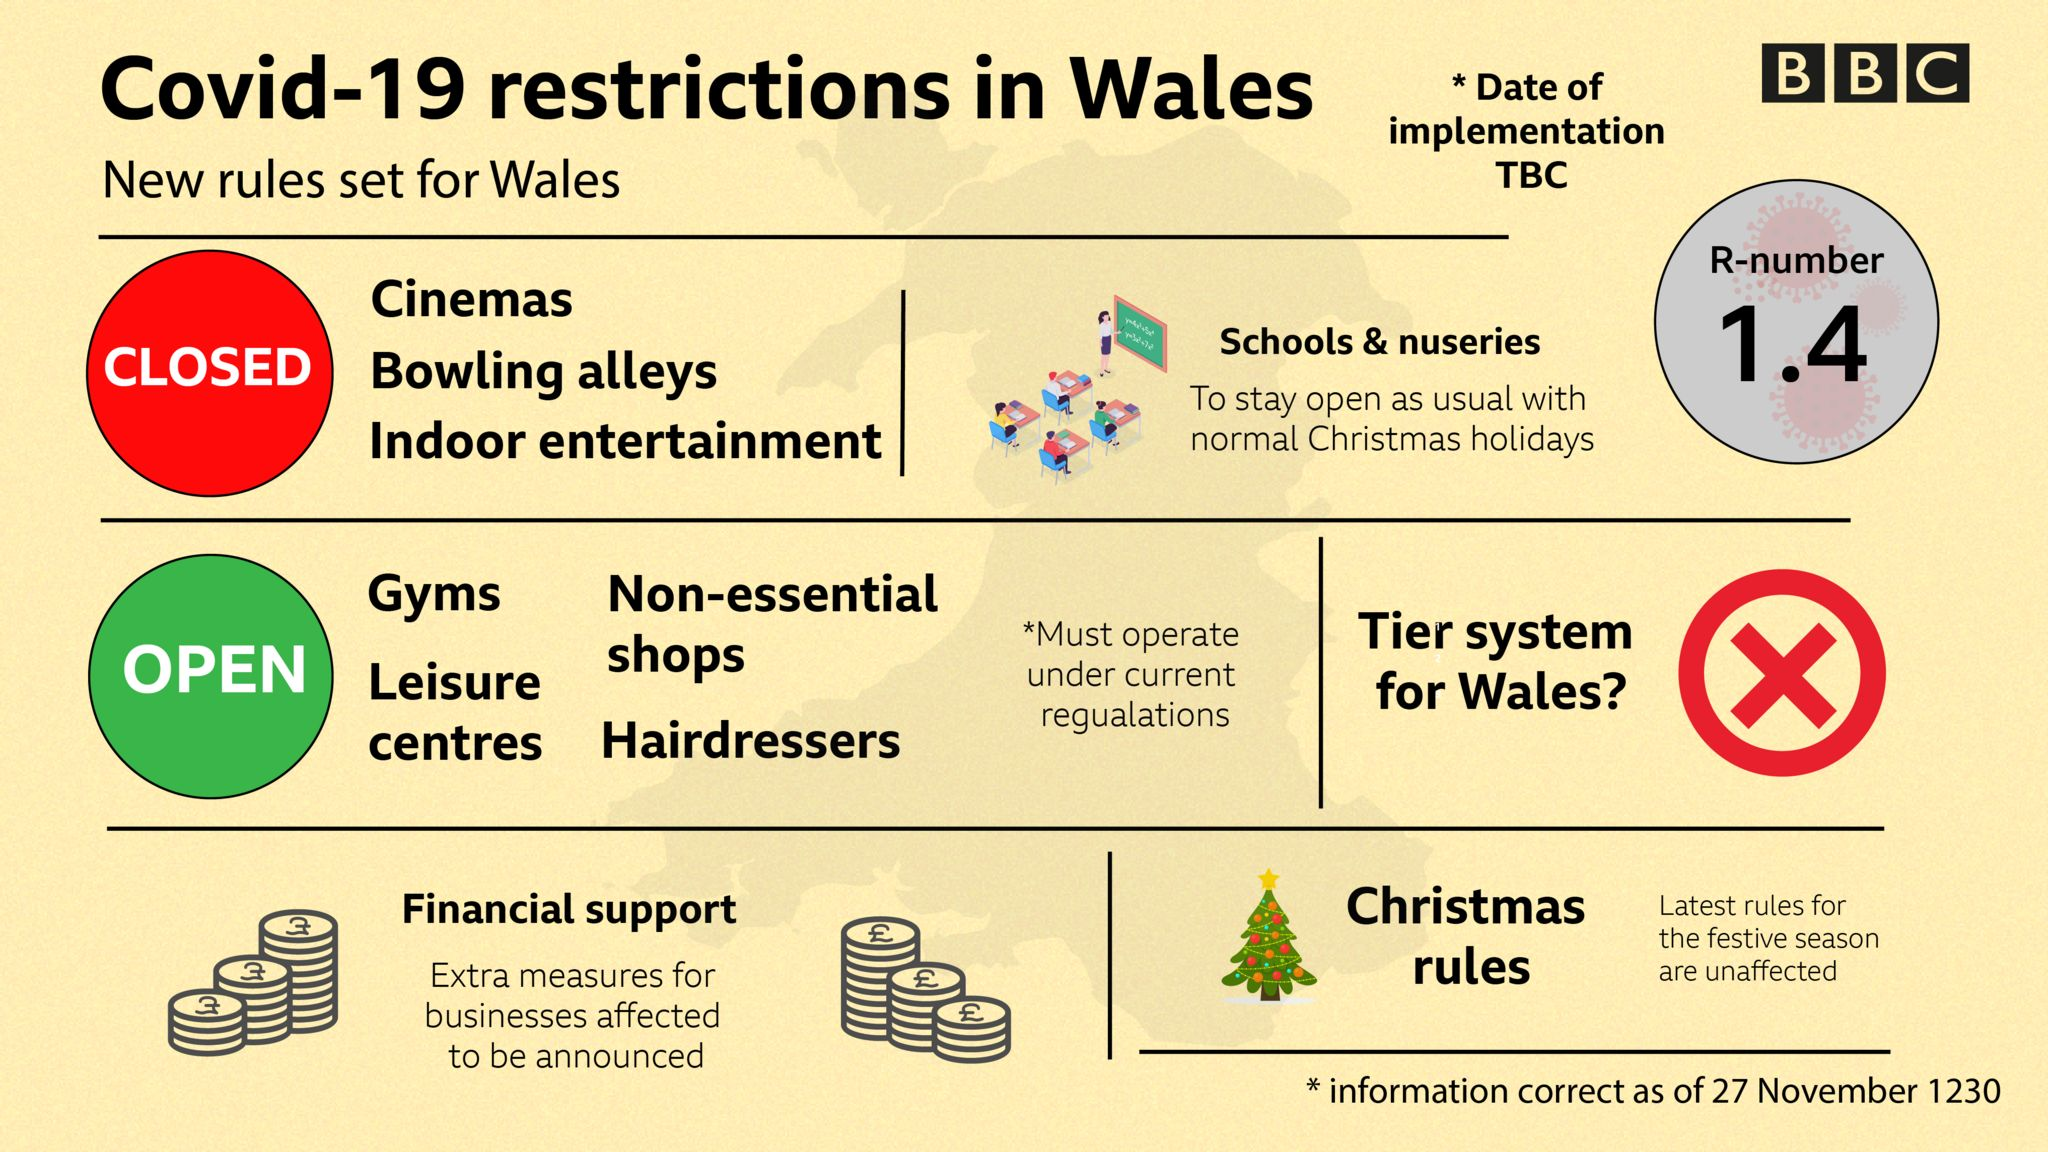 Graphic showing the new rules in Wales